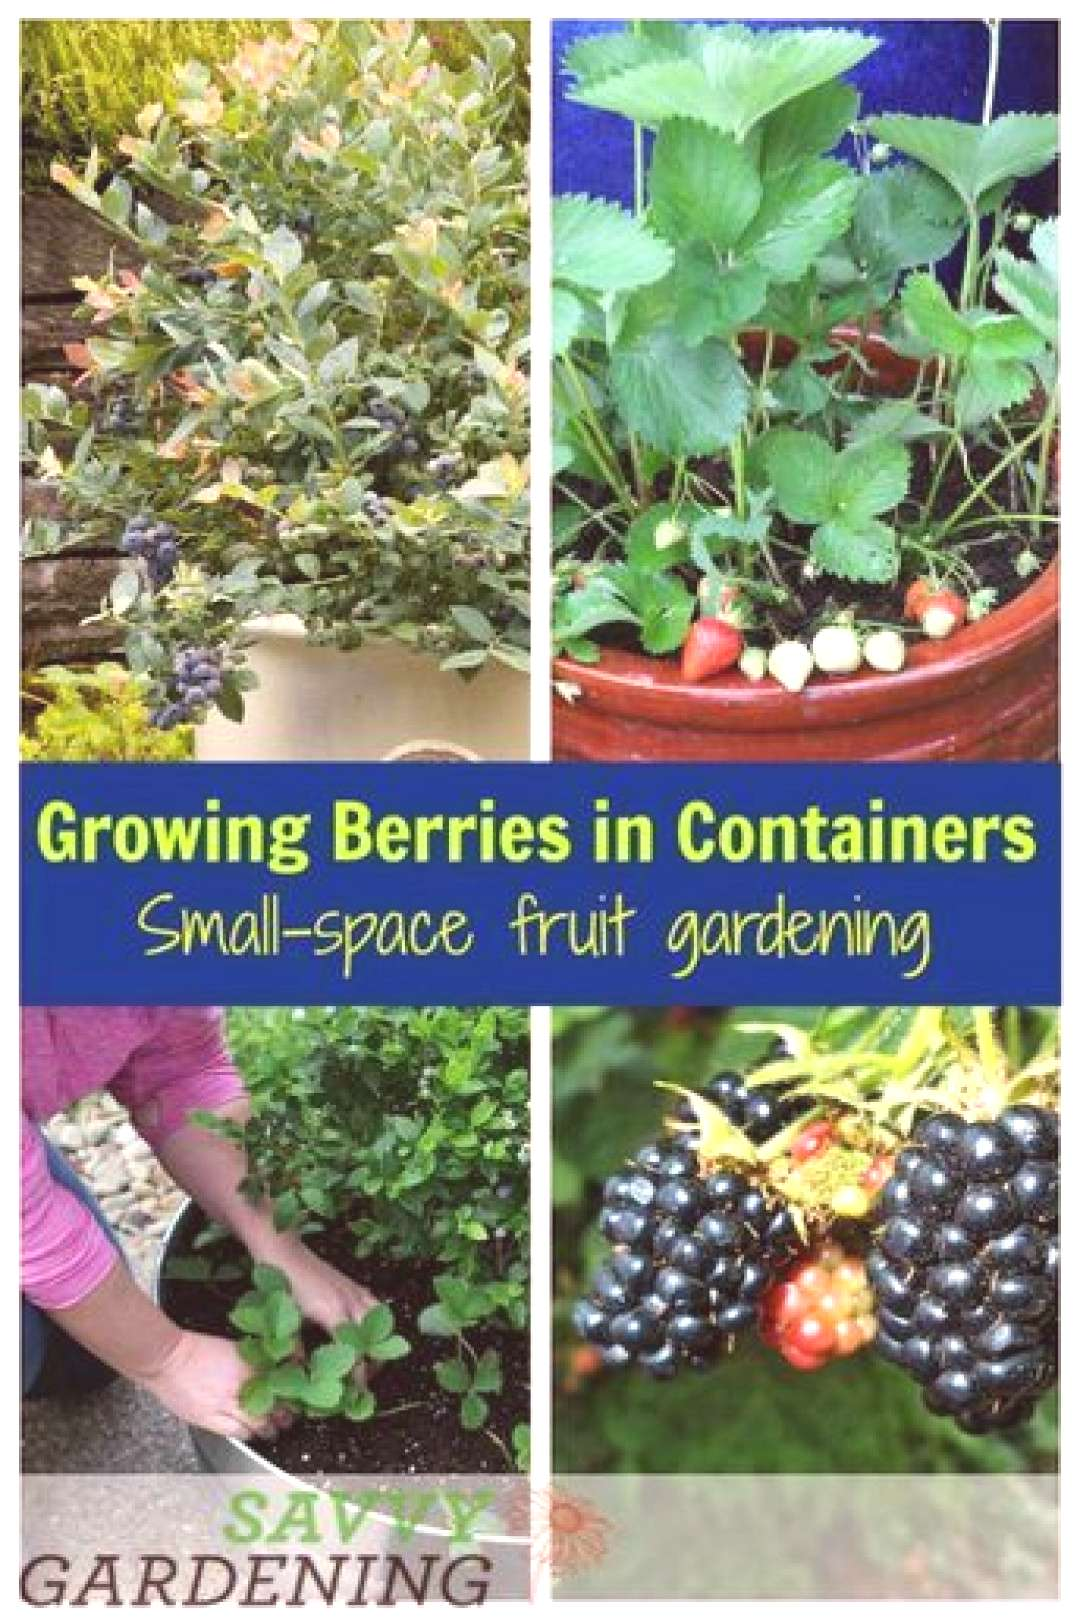 Growing berries in containers is the perfect way to have a small-space fruit garden. Learn about th